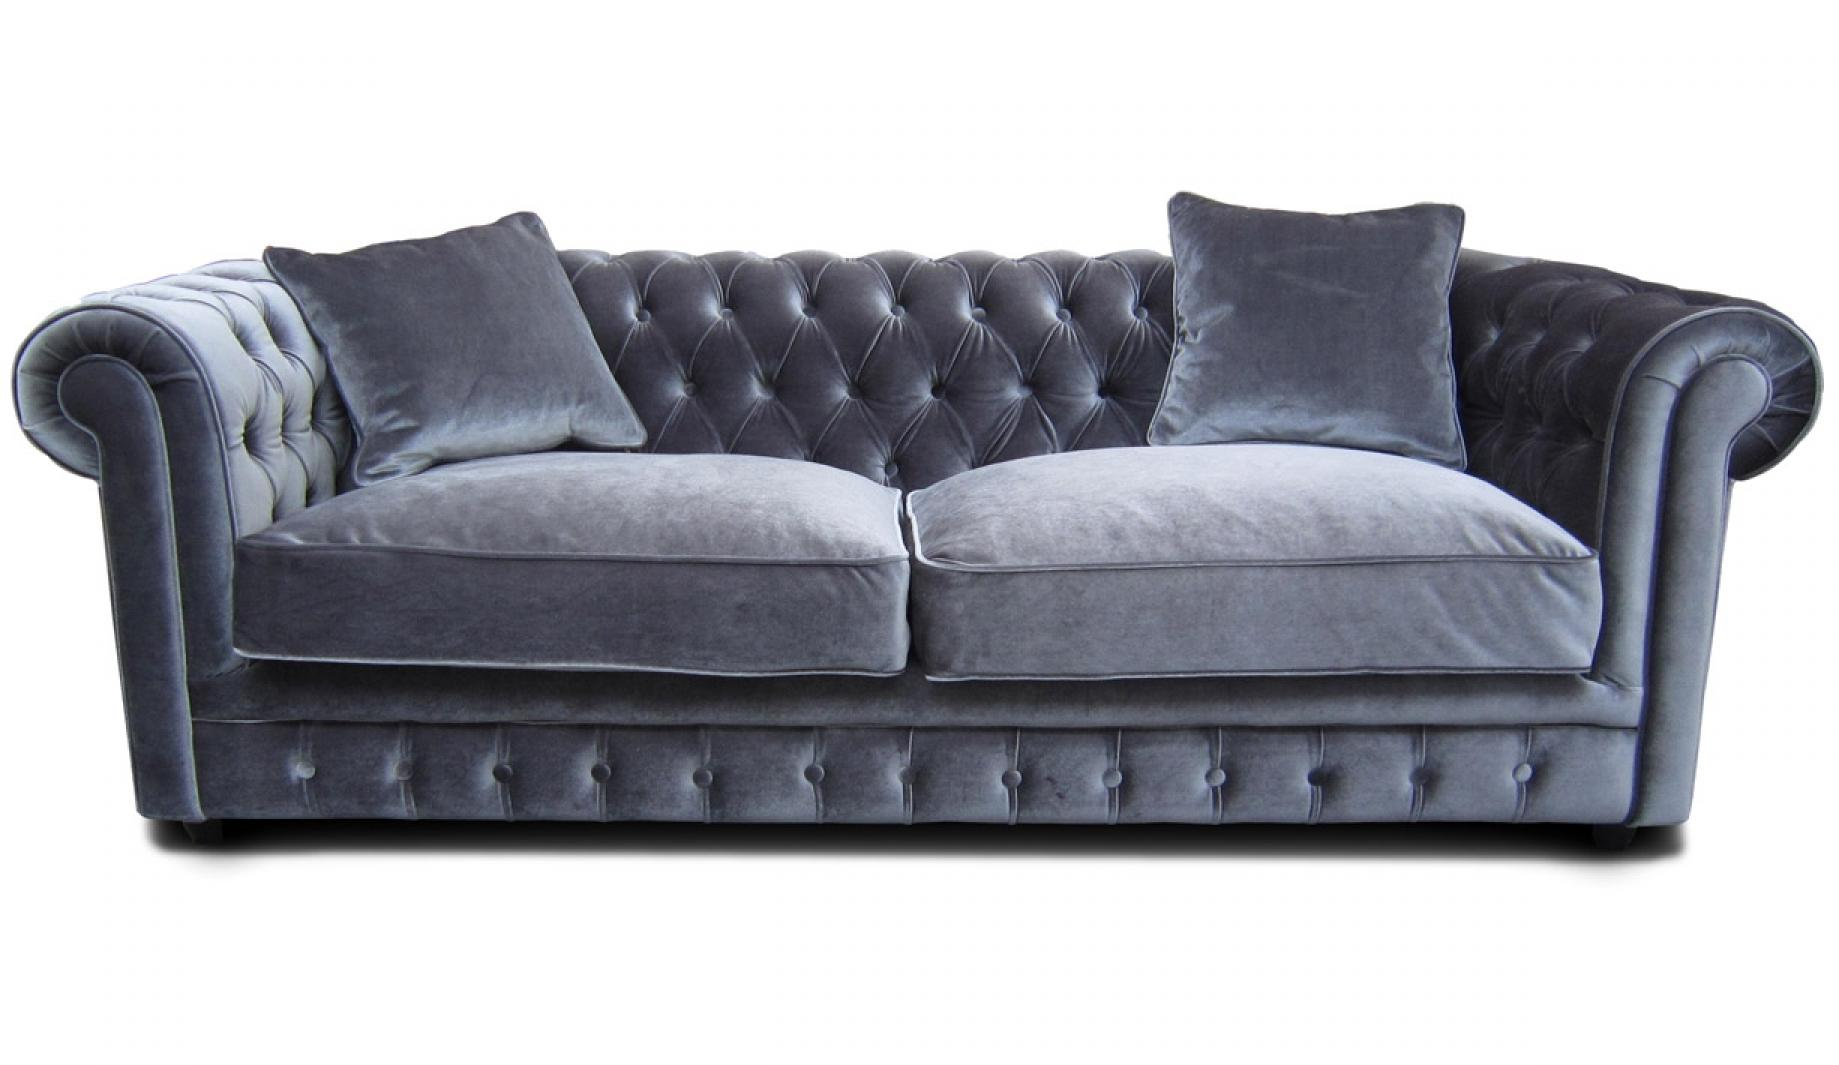 Canape chesterfield convertible for Canape pas cher en ligne